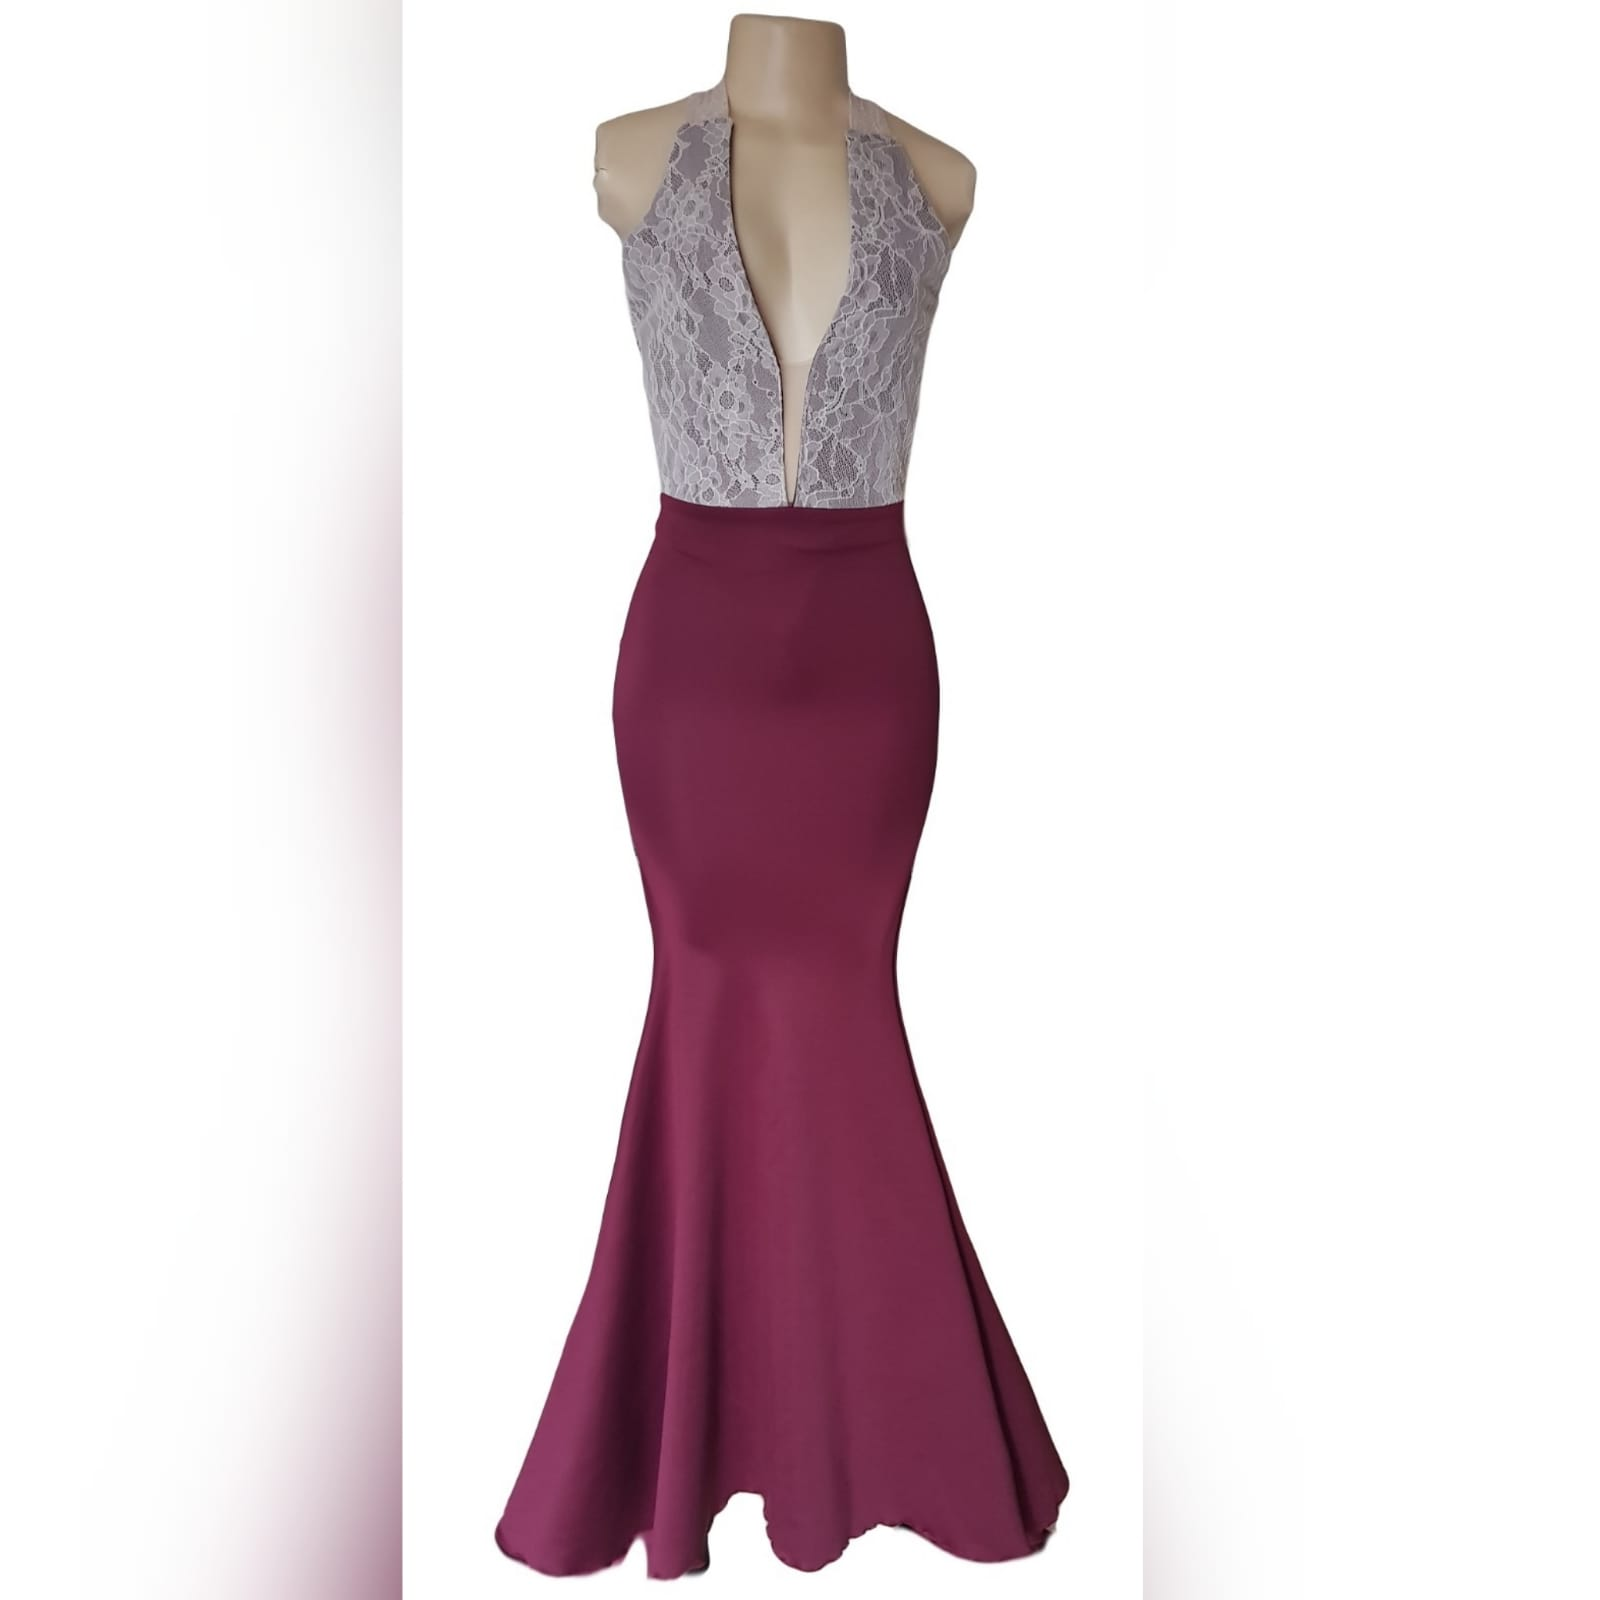 "Simple elegant soft mermaid maroon prom dress 1 <blockquote>""you were born to stand out, stop trying to fit in"". Roy t. Bennett</blockquote> simple elegant soft mermaid matric prom dress with an overlayer of cream lace on the bodice to add a unique touch to the design. Plunging neckline, low open back and lace wide crossed shoulder straps. With a matching lipstick/cellphone bag"